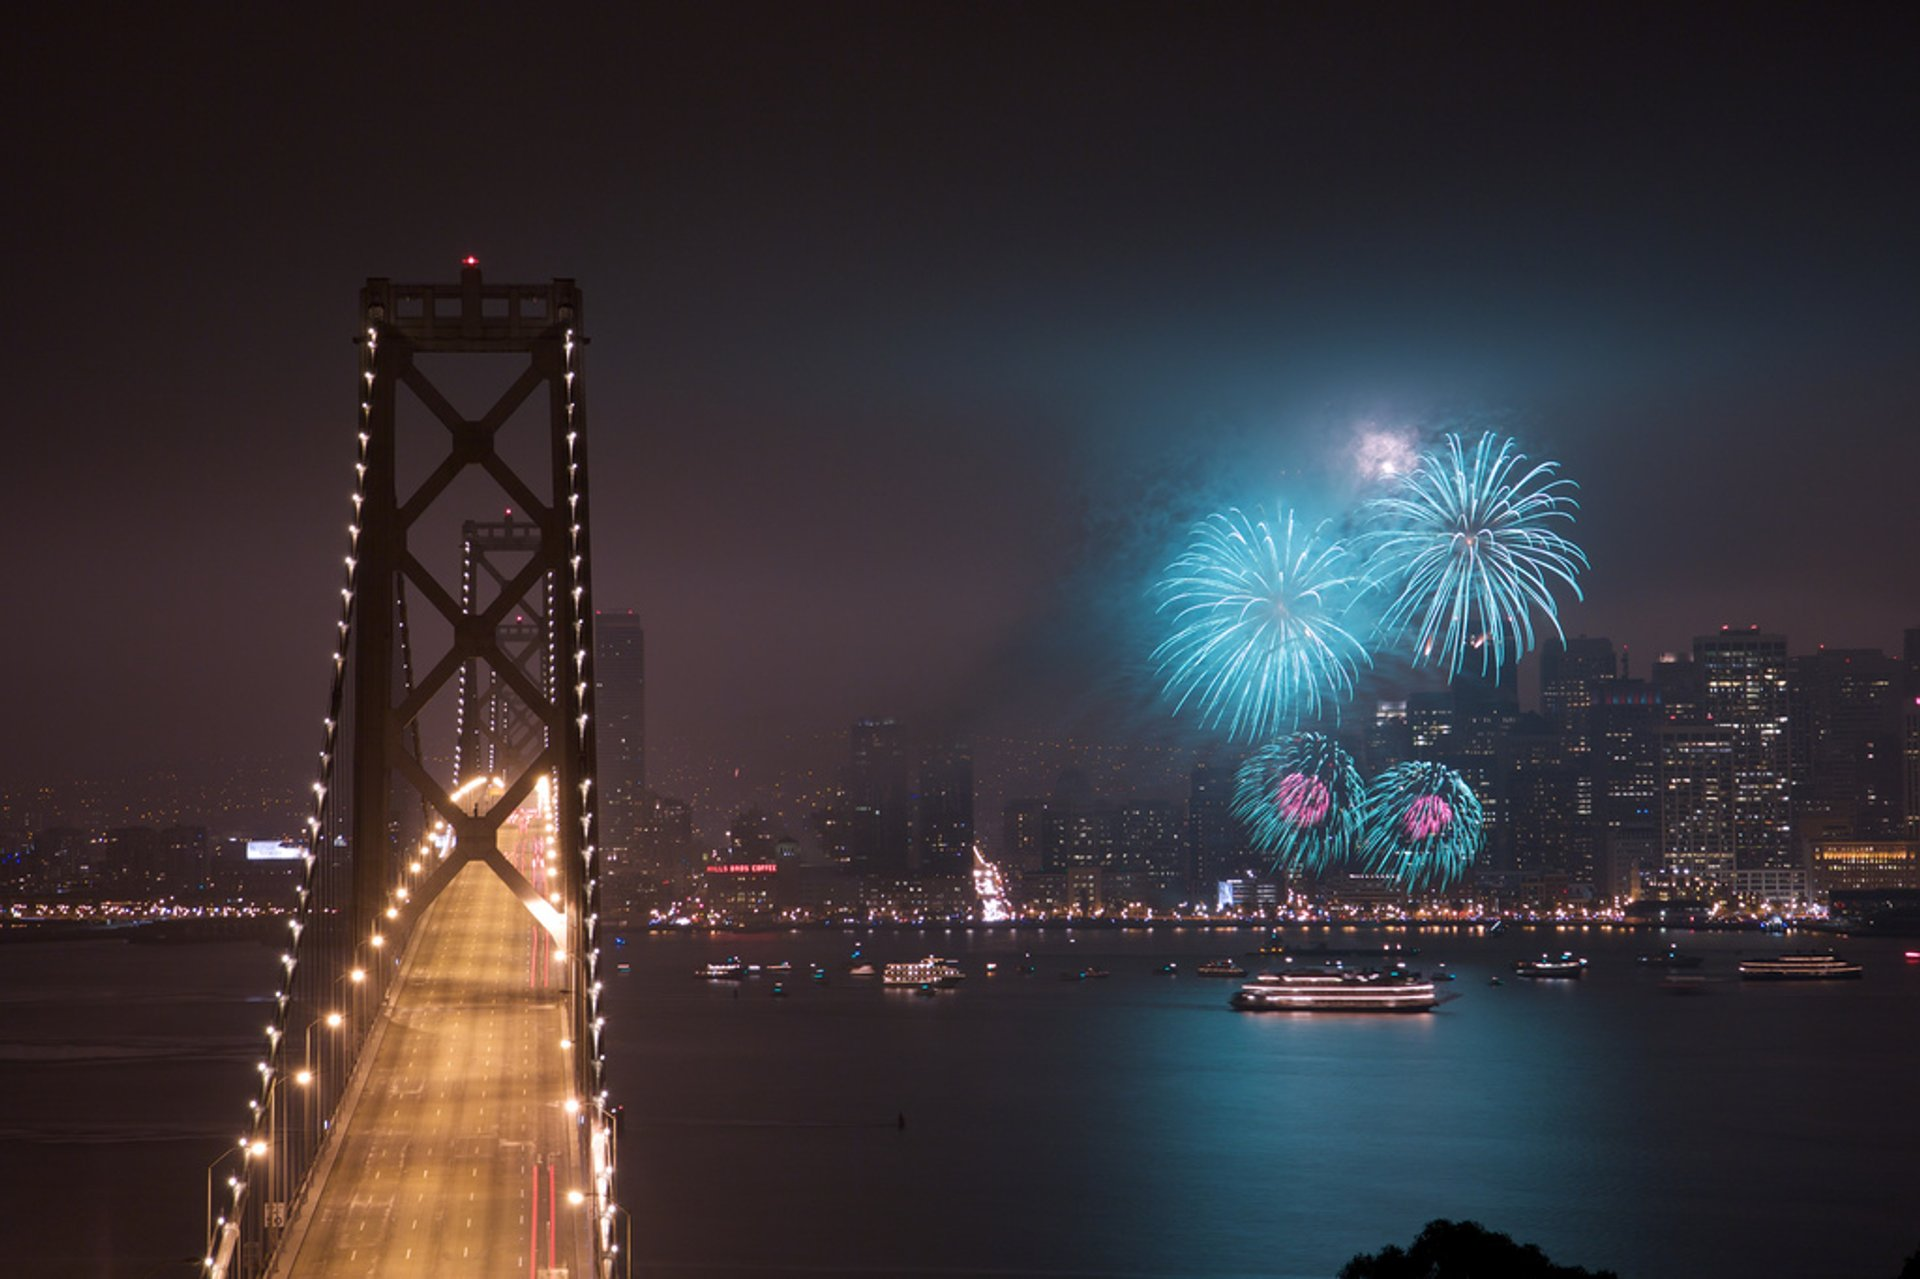 New Year's Eve Fireworks in San Francisco - Best Season 2020